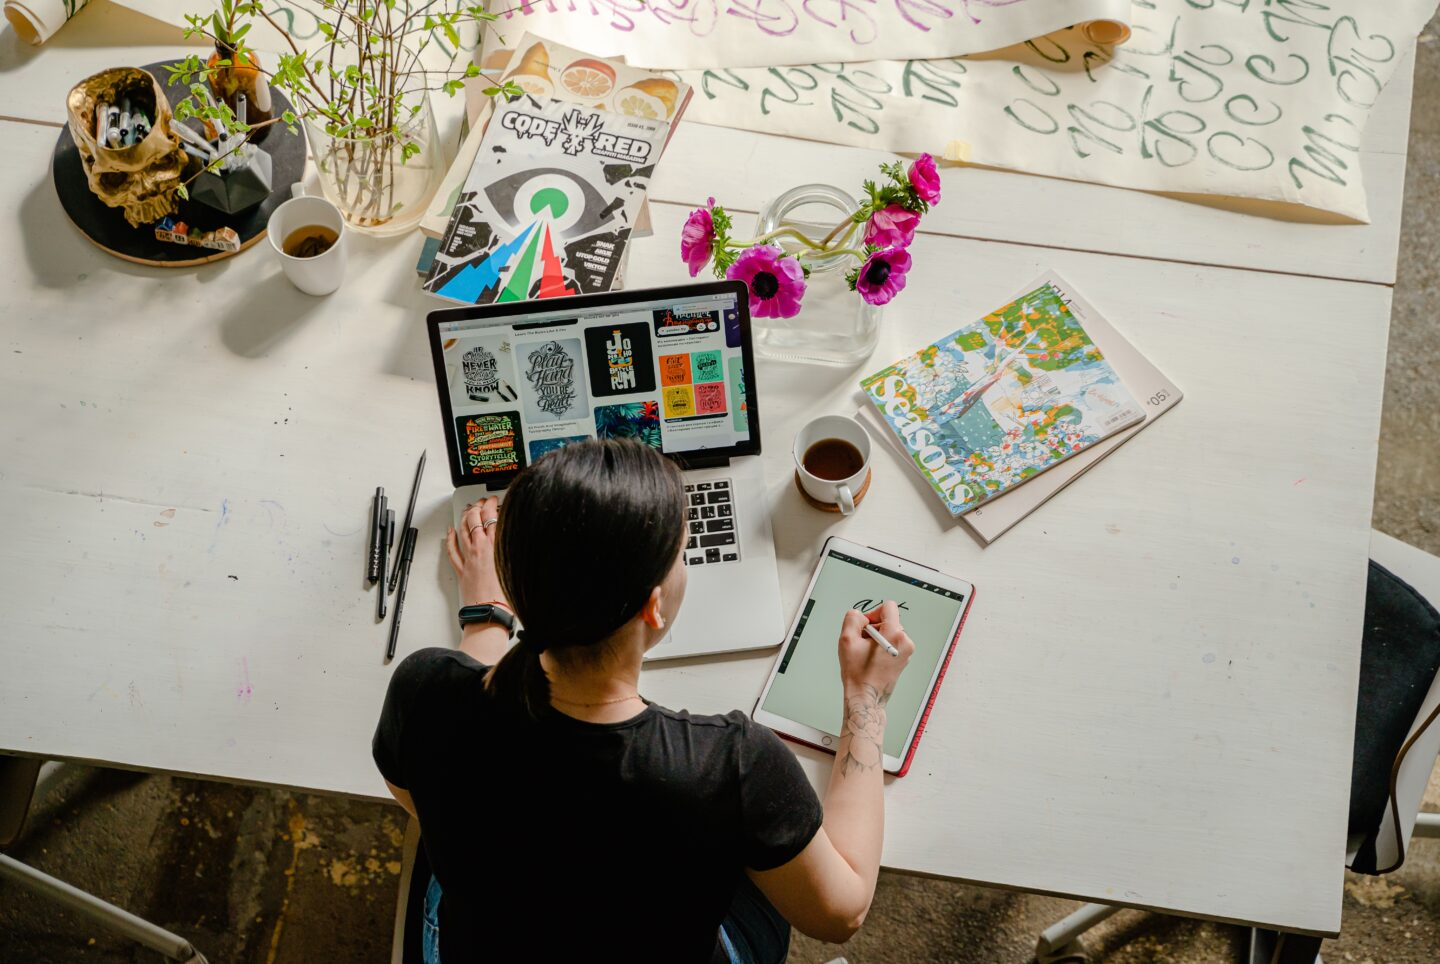 3 Things The Most Successful Blogs All Have in Common